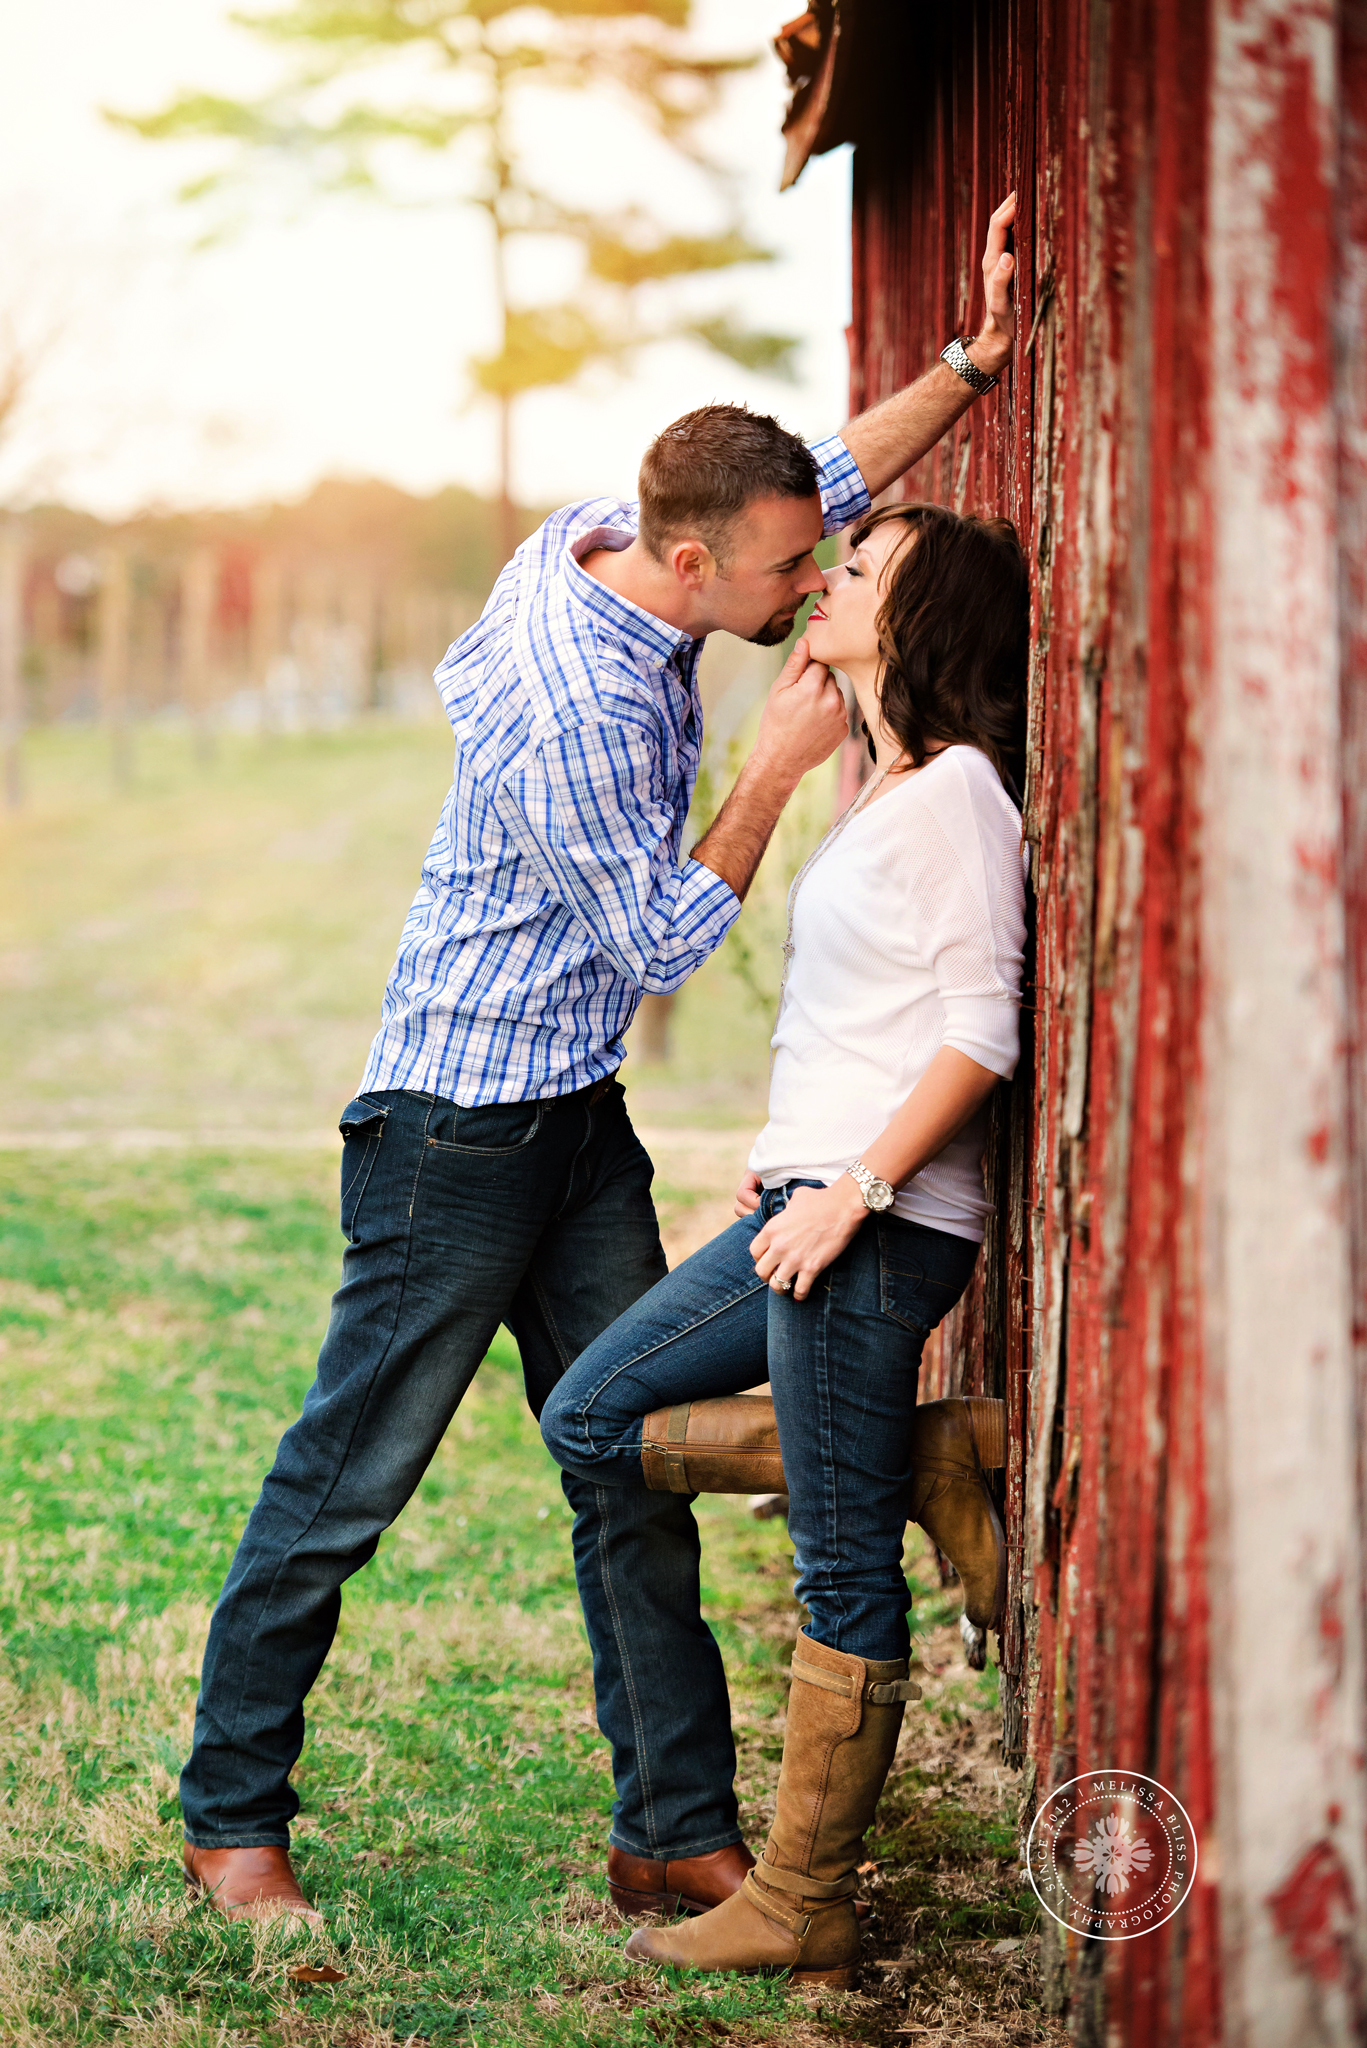 norfolk-chesapeake-suffolk-williamsburg-virginia-beach-photographers-smithfield-photo-session-engagement-photos-family-photographers-melissa-bliss-photography-fall-sessions.jpg